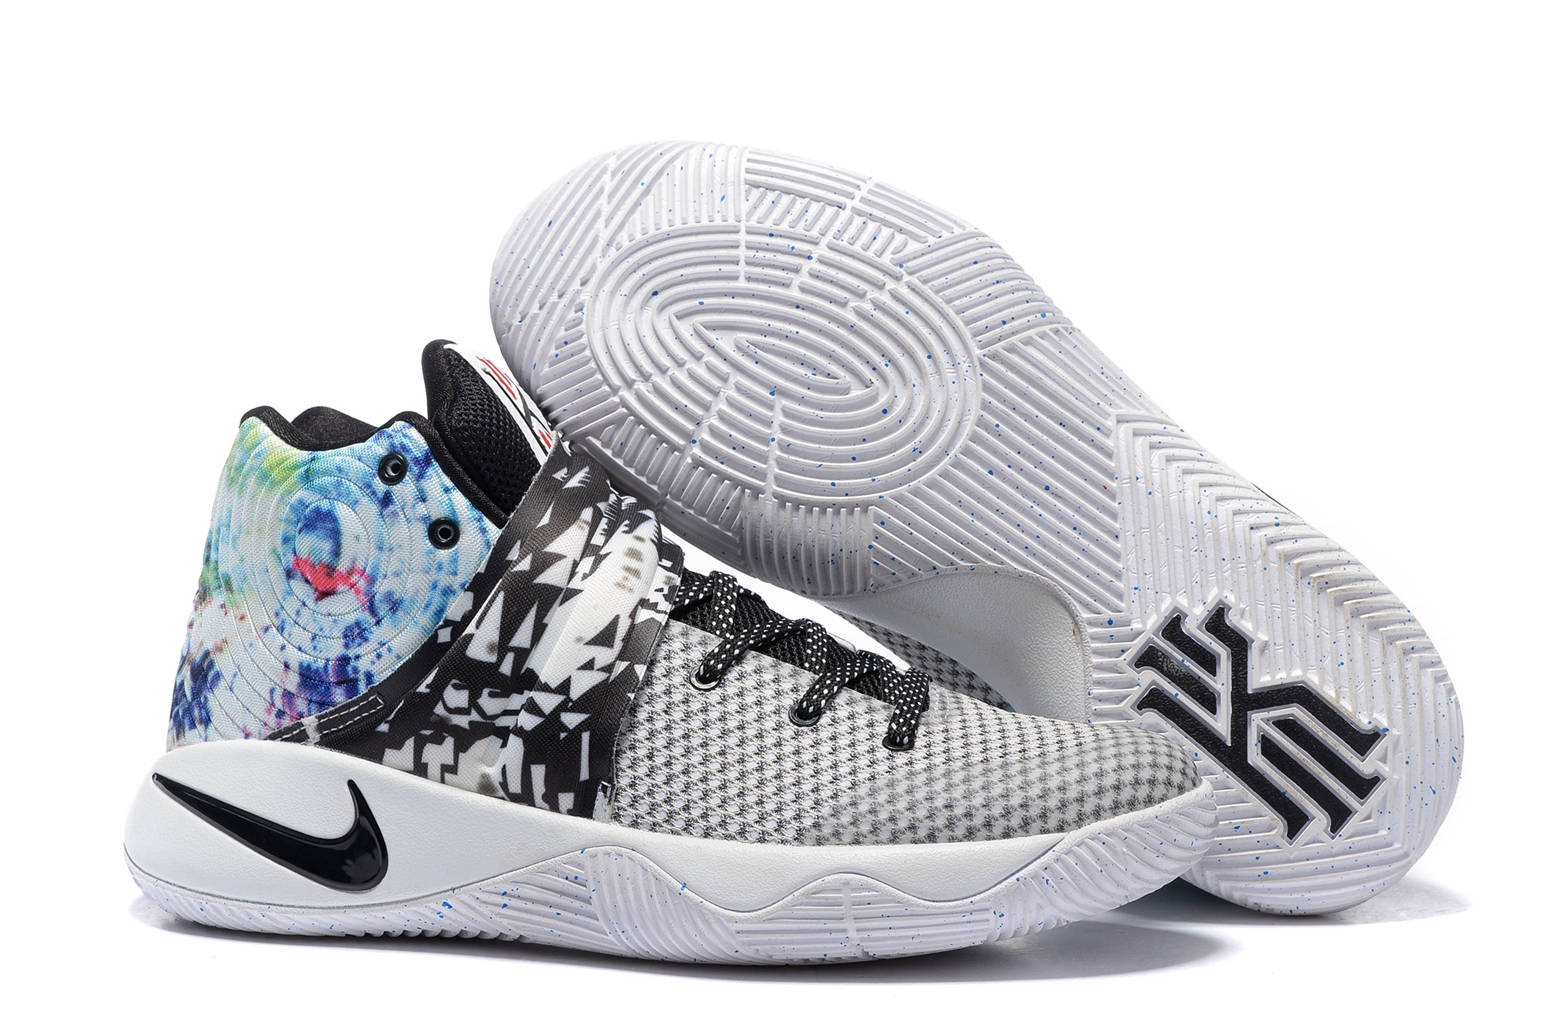 separation shoes a3f9d 14e2a Prev Nike Kyrie II 2 Irving Effect Tie Dye Men Shoes Basketball Sneakers  819583-901. Zoom